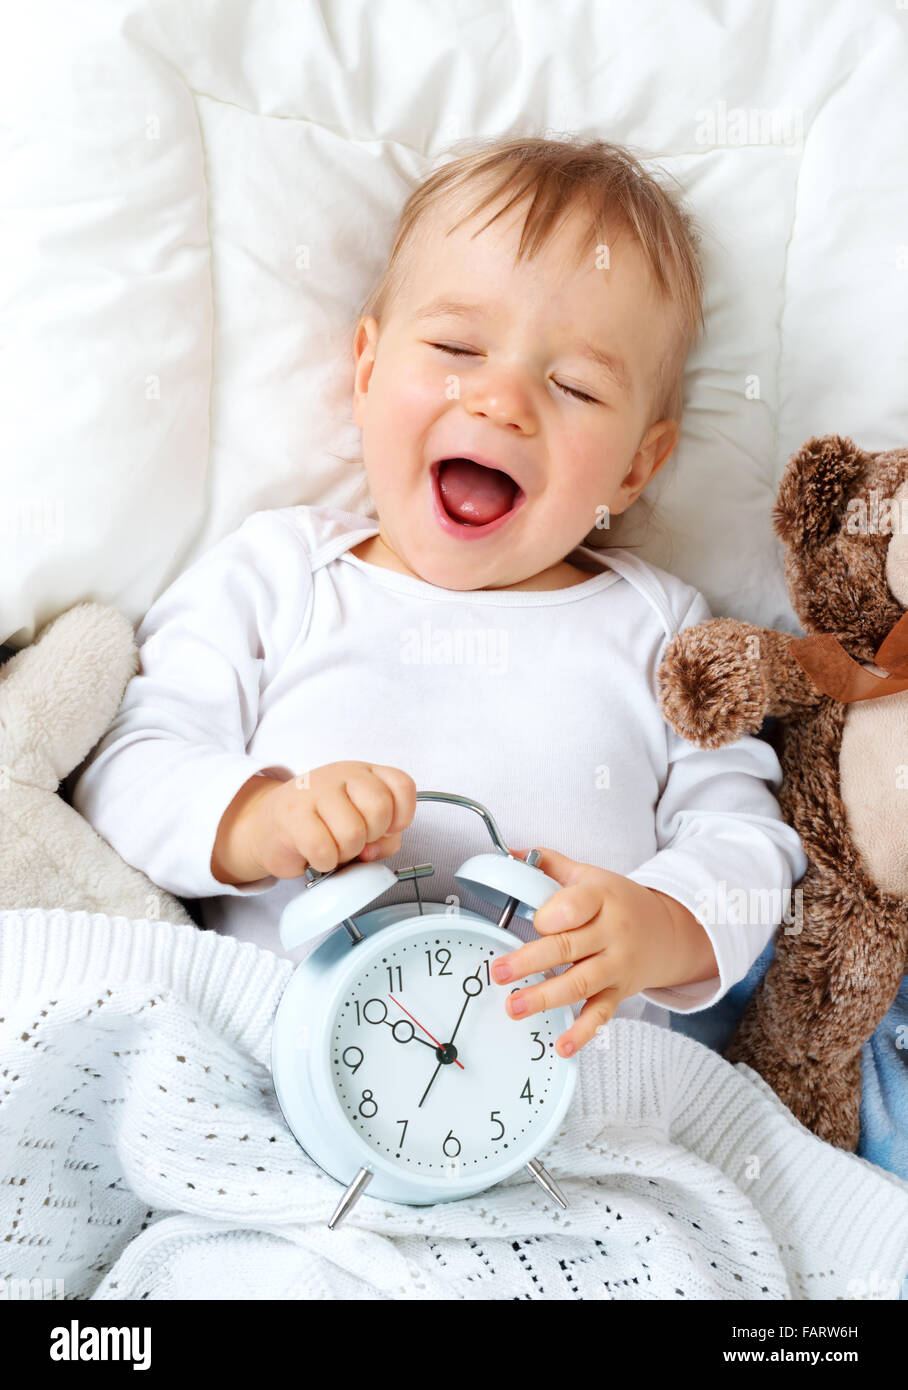 One year old baby with alarm clock - Stock Image